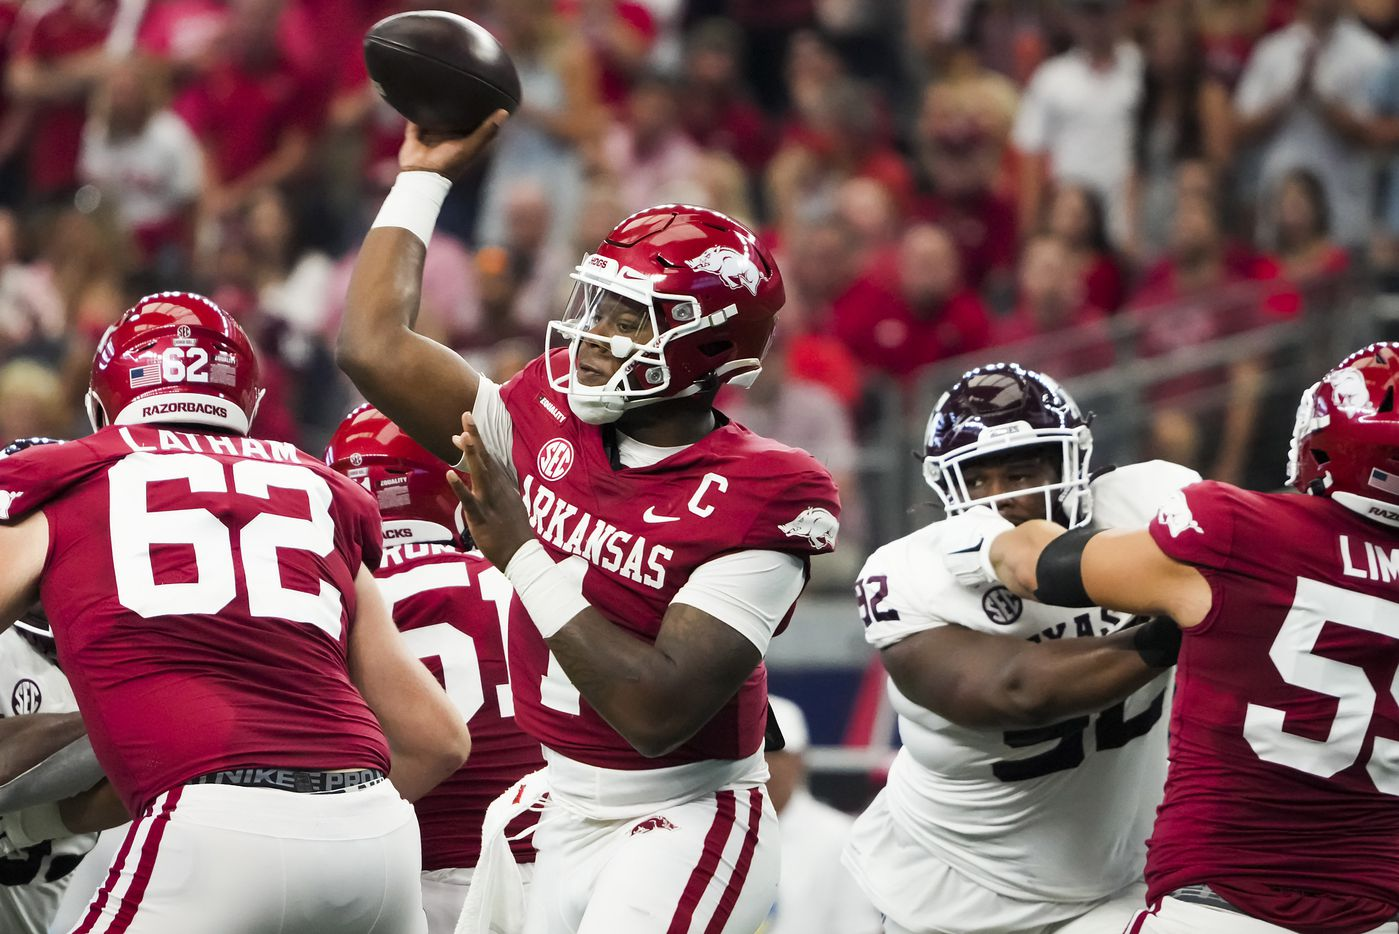 Arkansas quarterback KJ Jefferson (1) throws a pass under pressure from Texas A&M defensive lineman Jayden Peevy (92) during the first half of an NCAA football game at AT&T Stadium on Saturday, Sept. 25, 2021, in Arlington.